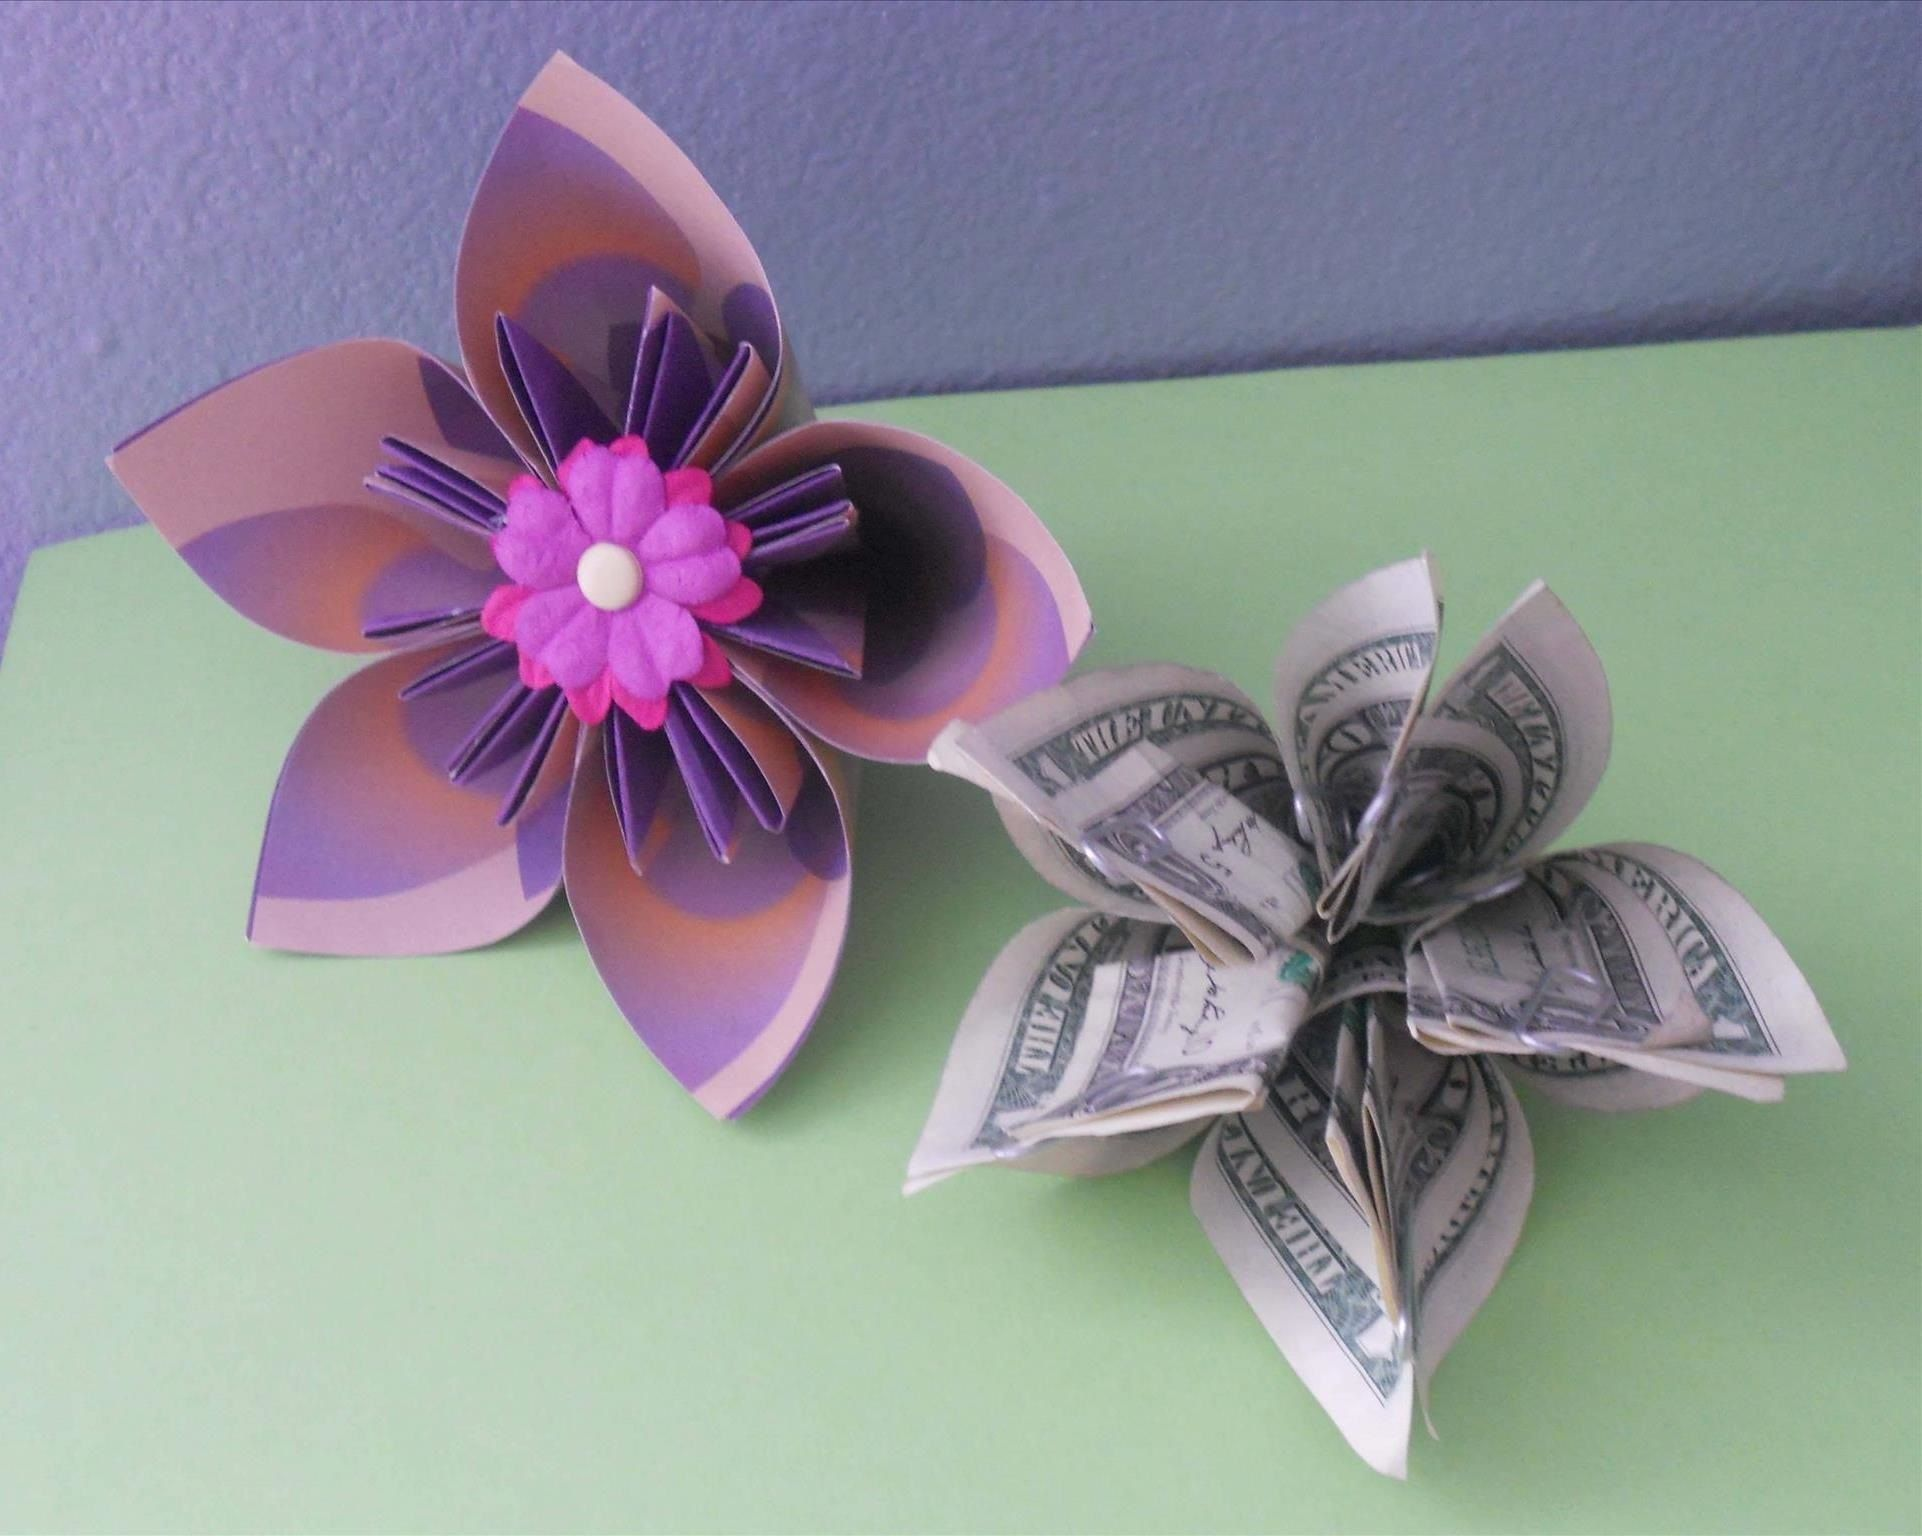 Money origami flower edition 10 different ways to fold a dollar money origami flower edition 10 different ways to fold a dollar bill into a mightylinksfo